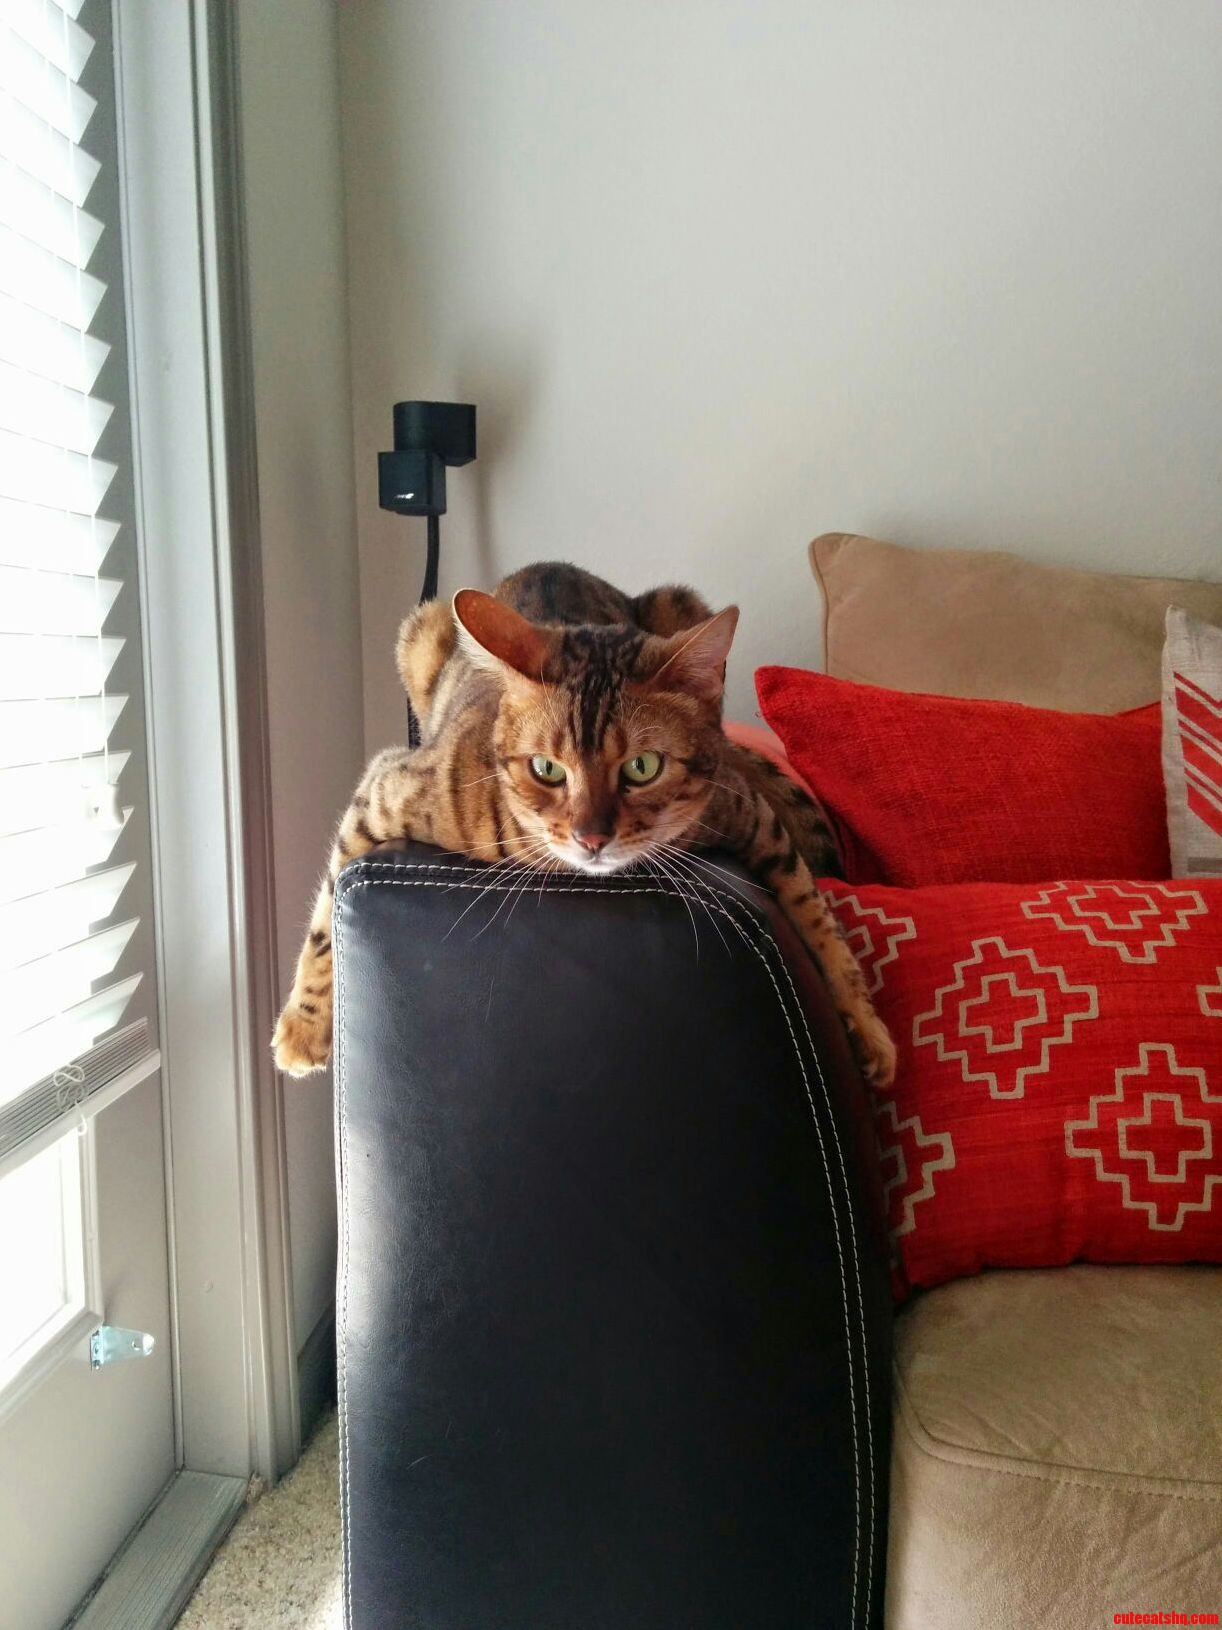 My bengal channeling his inner leopard